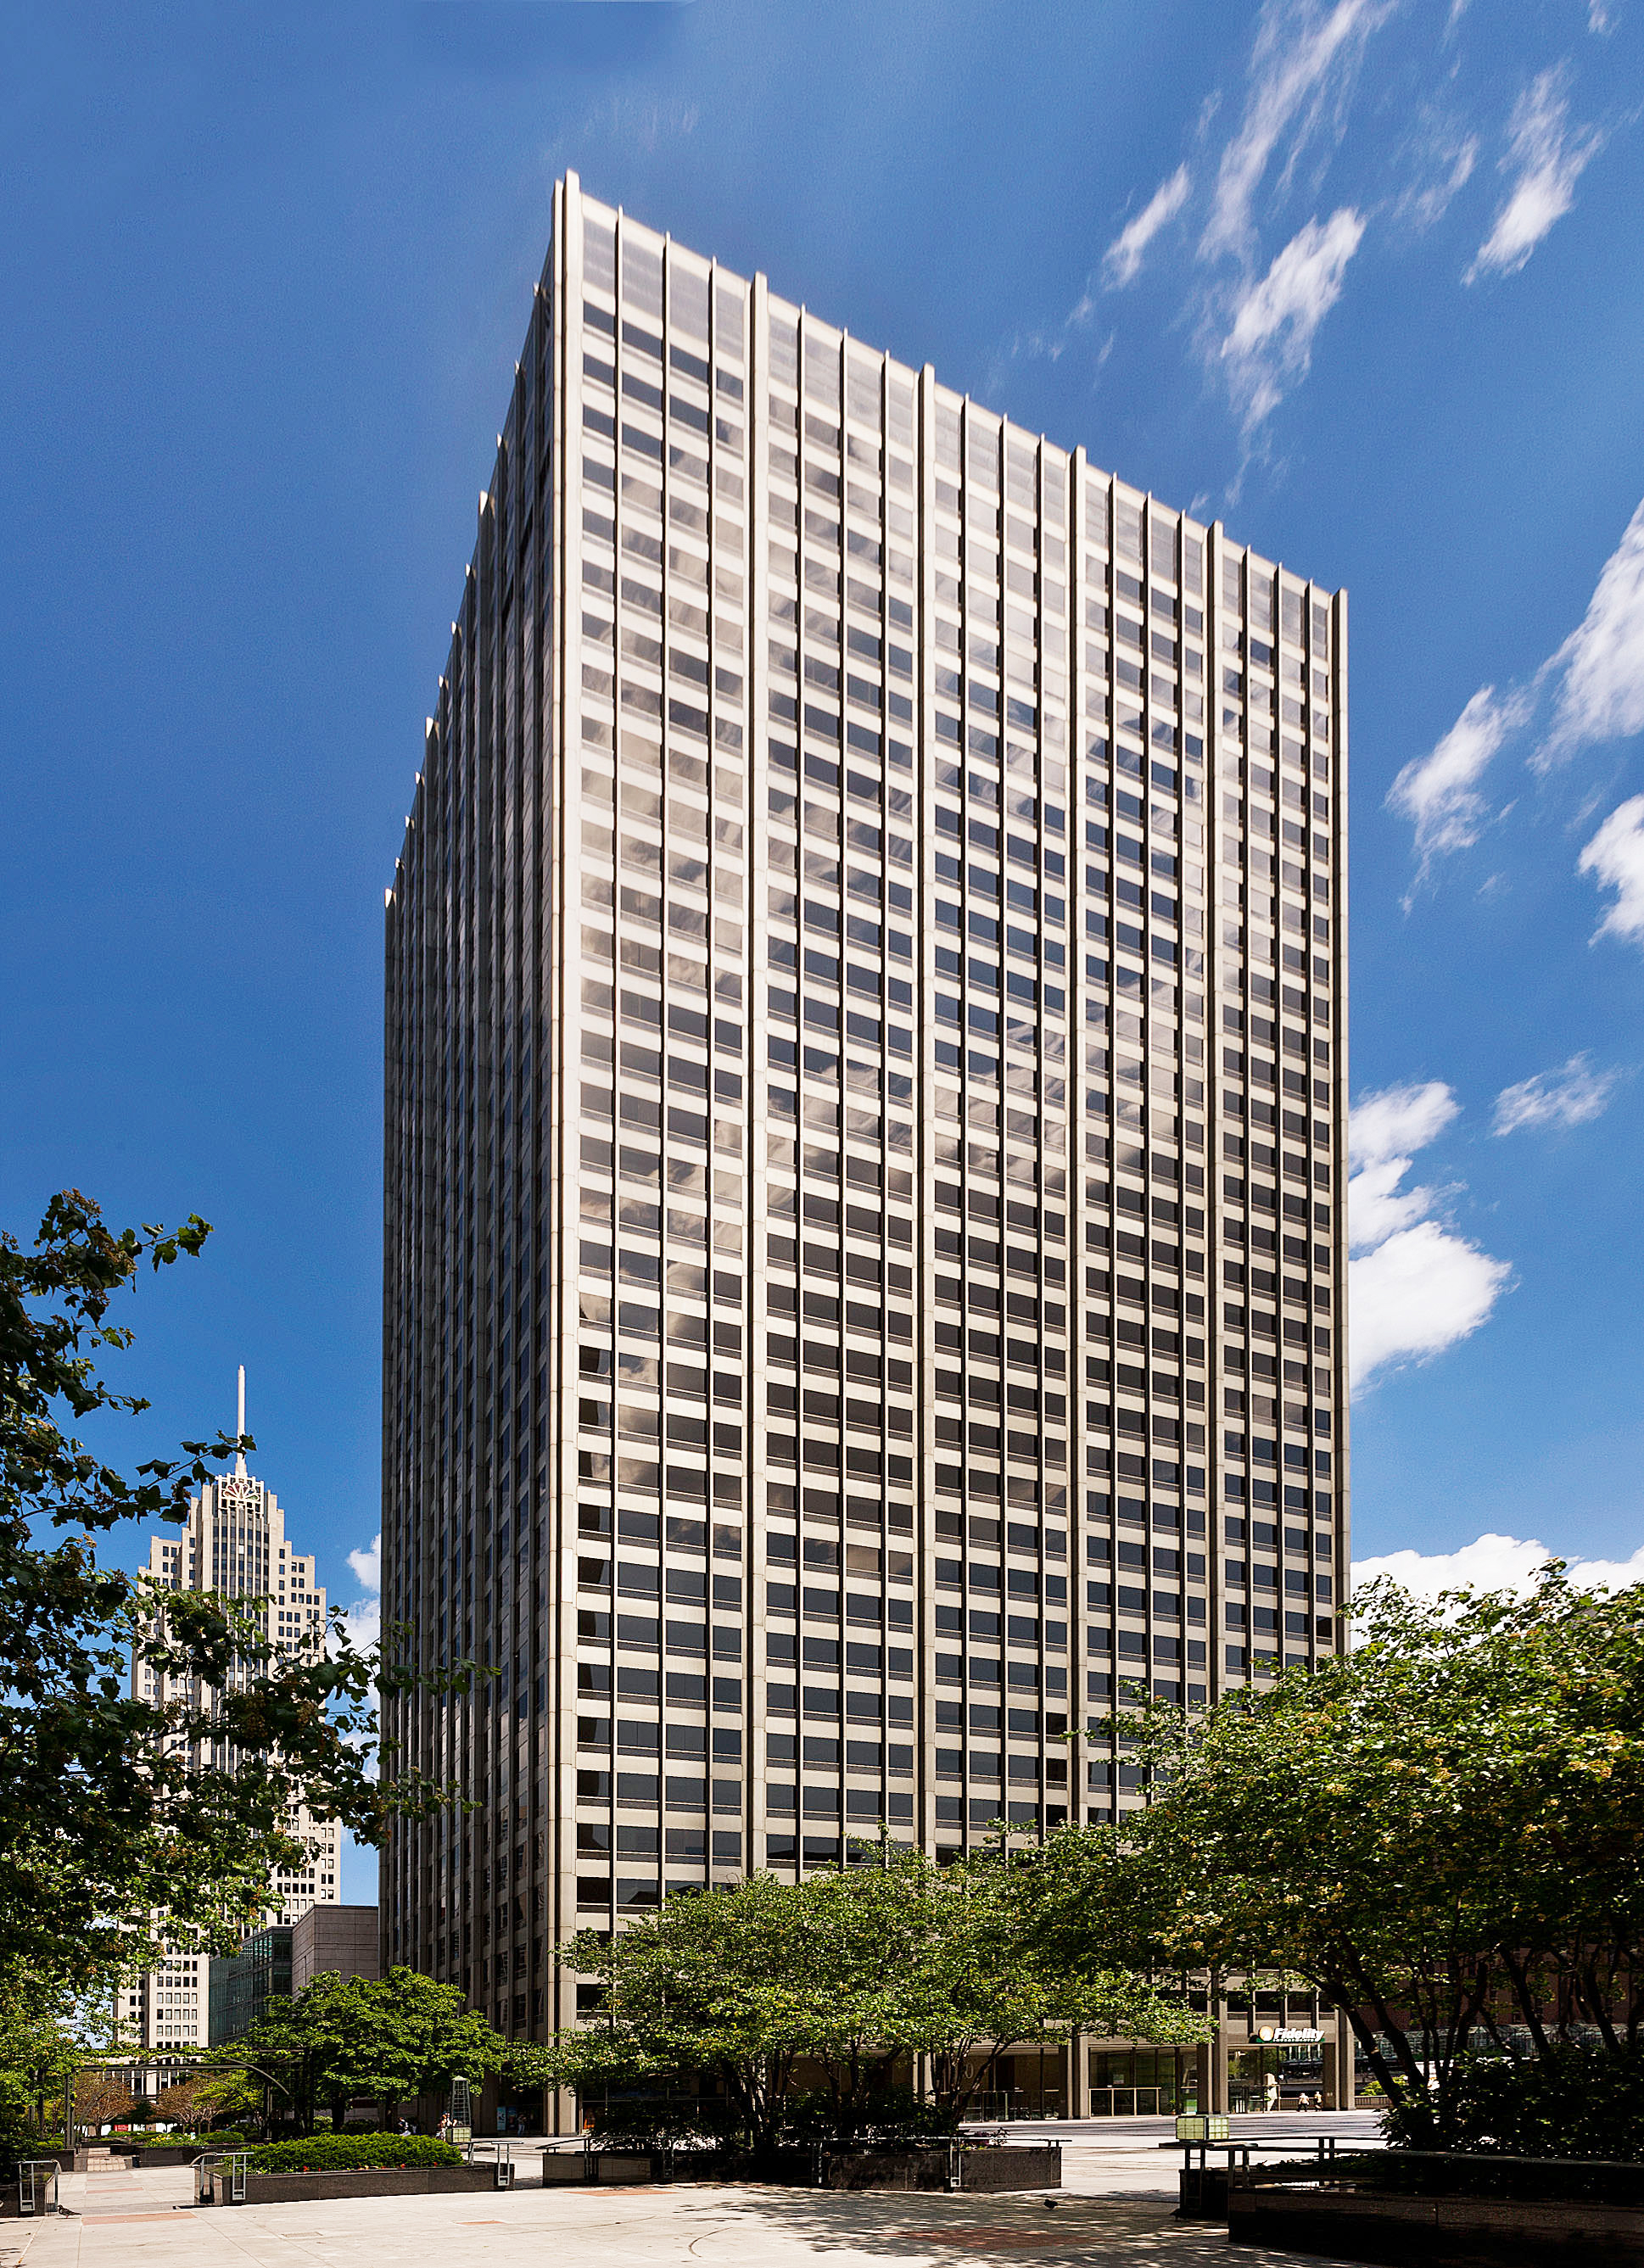 <h3>Chicago</h3>401 N. Michigan Ave.<br/>Suite 3300<br/>Chicago, IL 60611<br/><br/>Phone: 312-465-7000<br/>Fax: 312-465-7001<br>&nbsp<br>